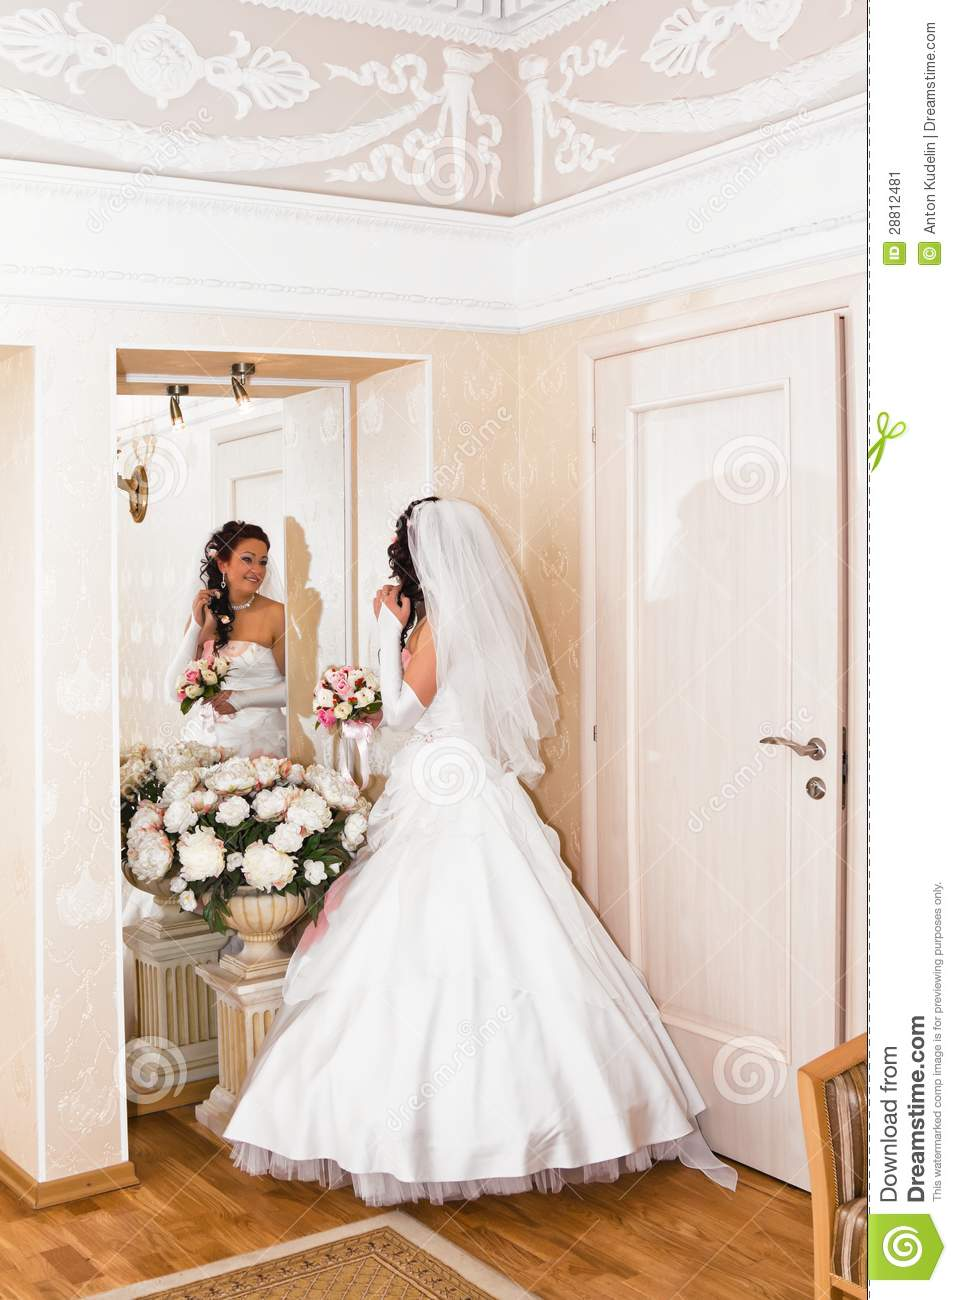 Bride In Wedding Dress Looks In The Mirror Stock Image